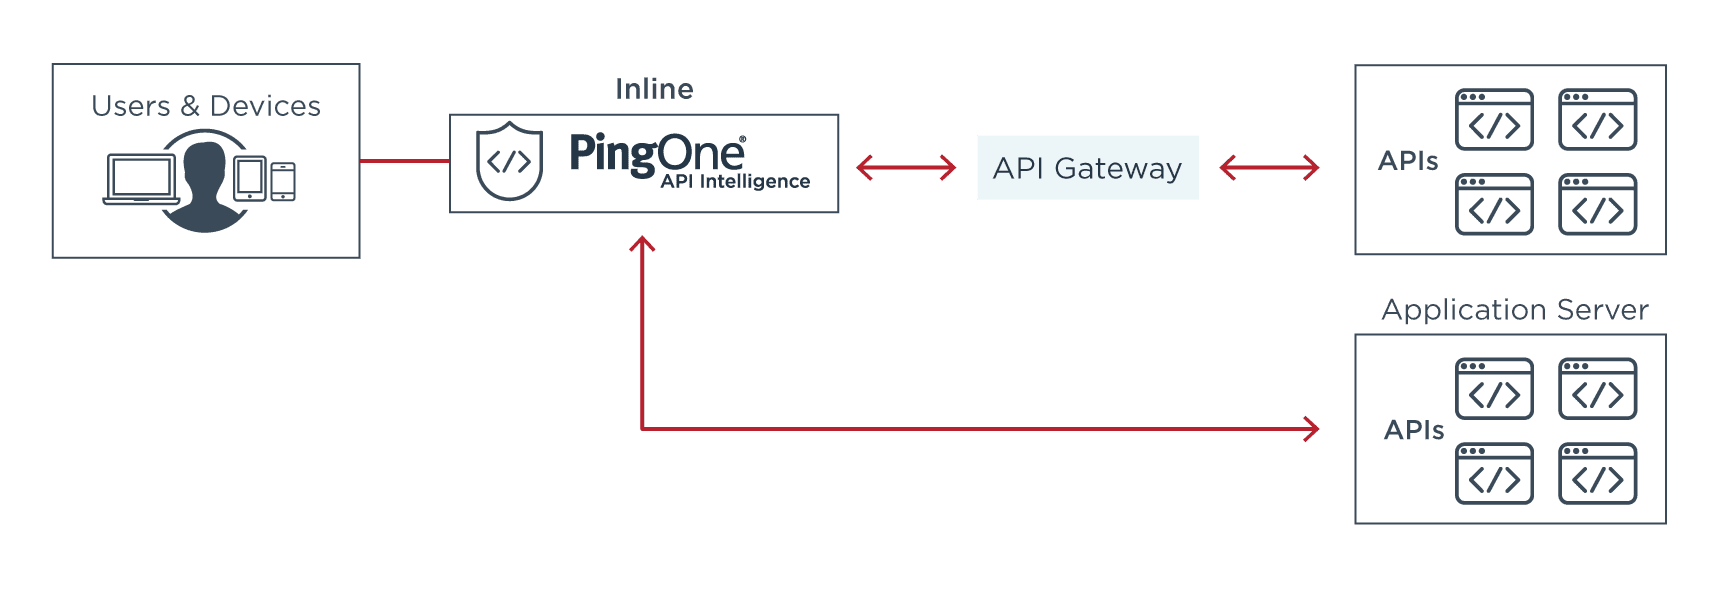 Inline Deployment of PingOne API Intelligence with an API Gateway or Application Server